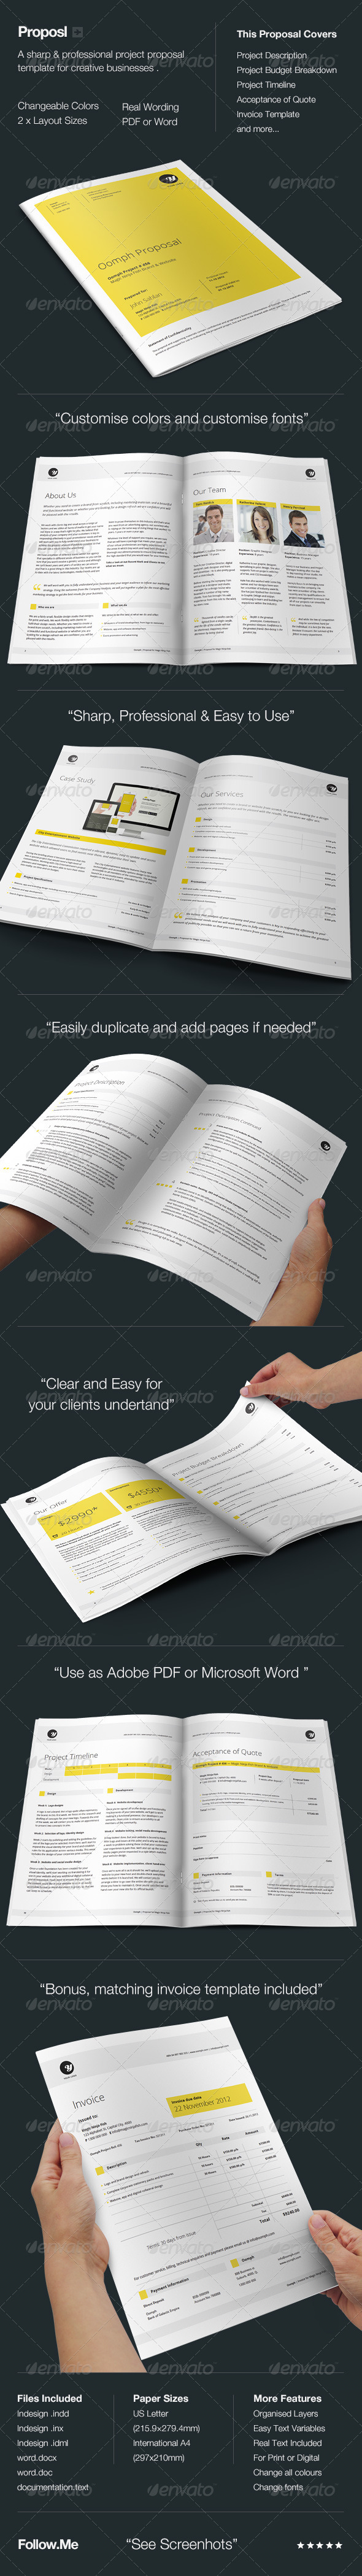 GraphicRiver Proposal Template 3523858 Created: 2